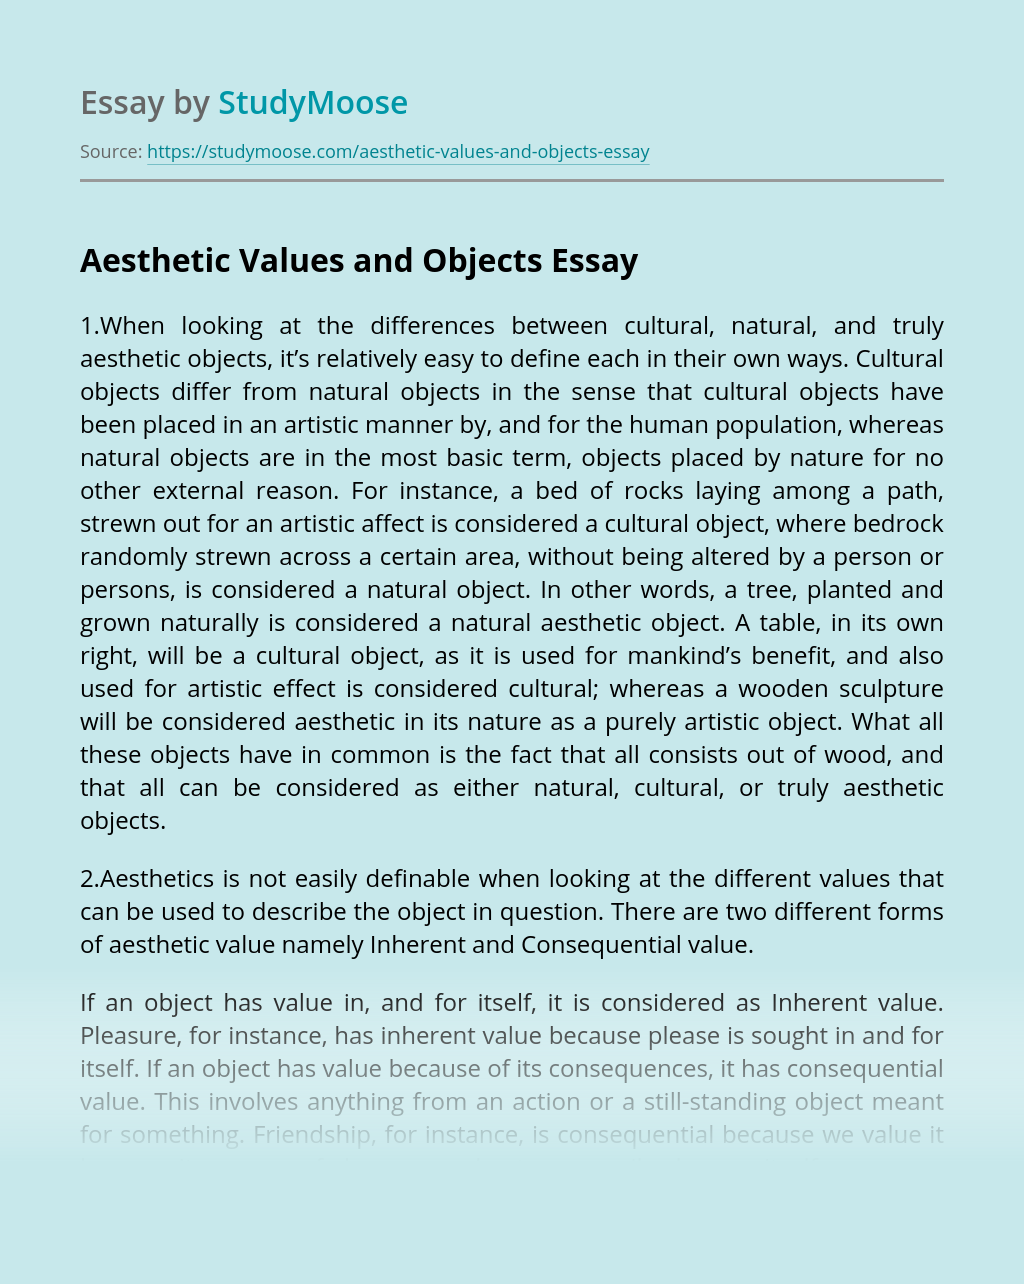 Aesthetic Values and Objects